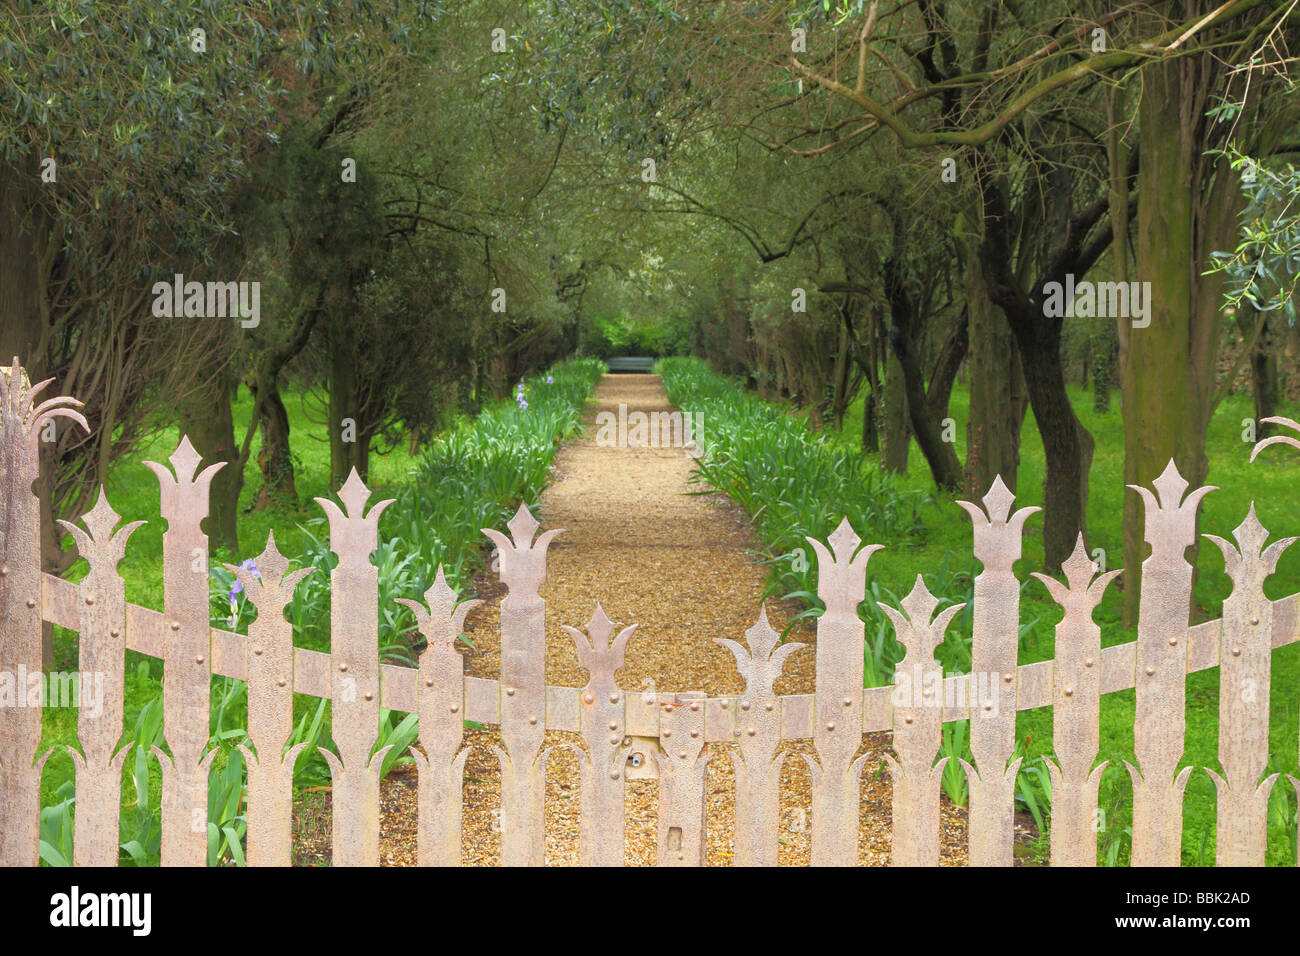 Orchard Fontfroide Benedictine Abbey Languedoc-Roussillon France - Stock Image